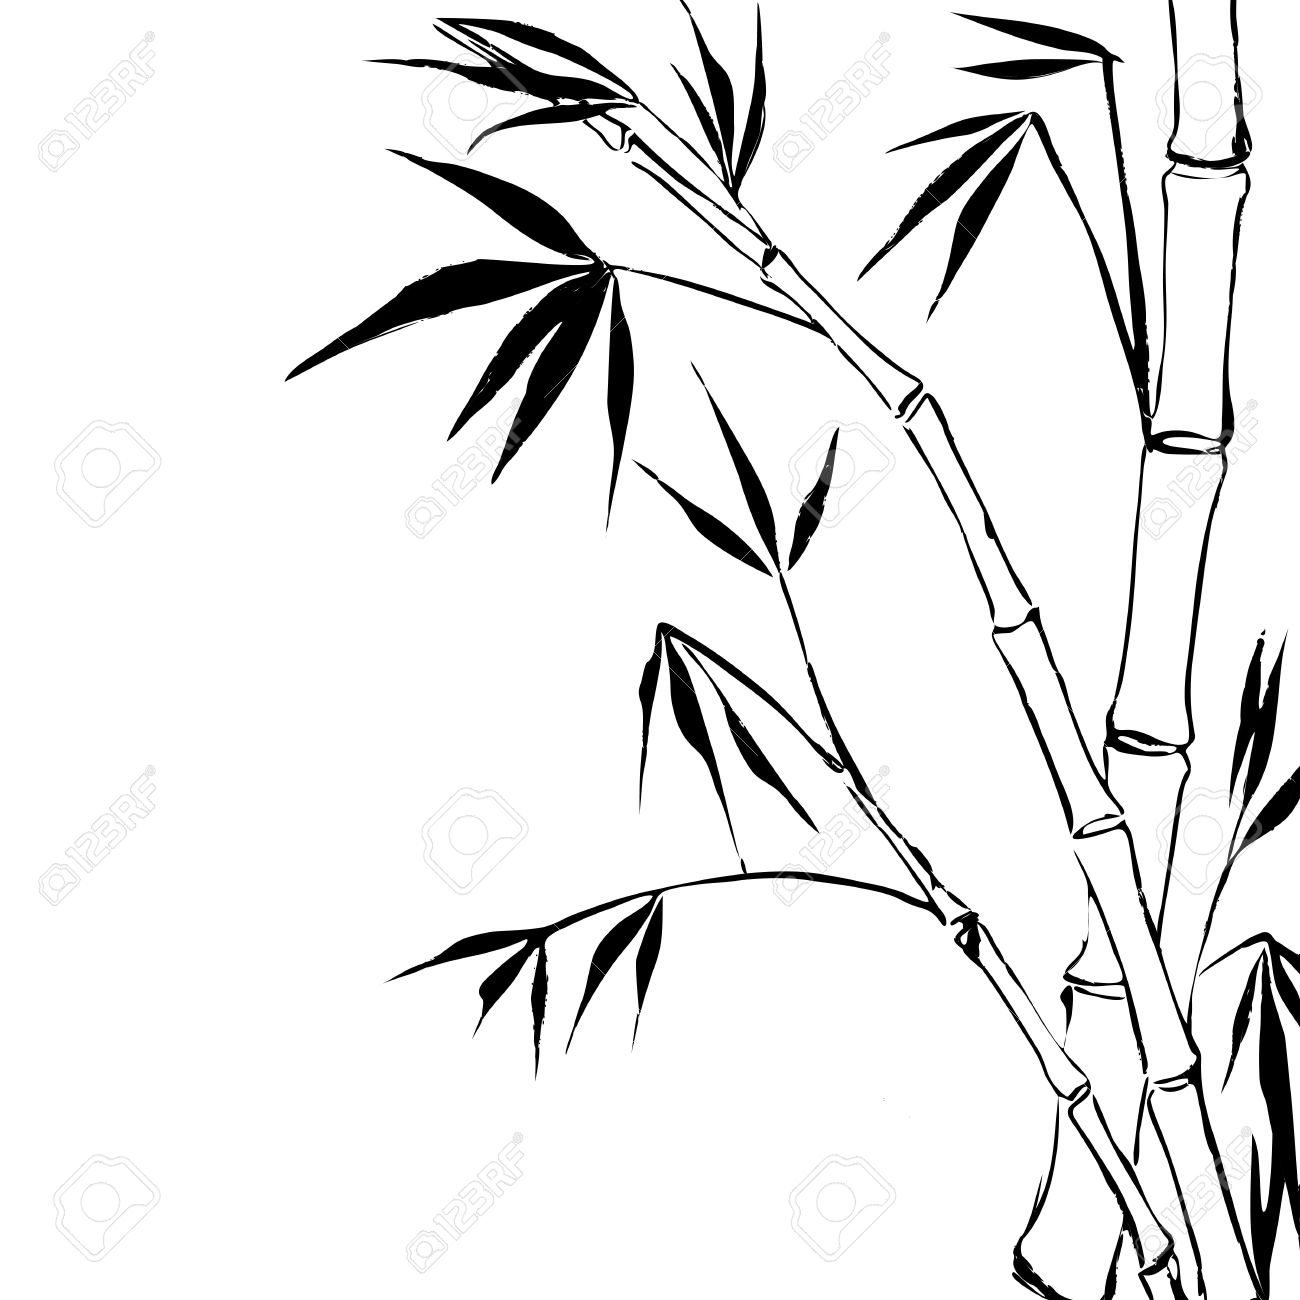 Drawn background bamboo #2